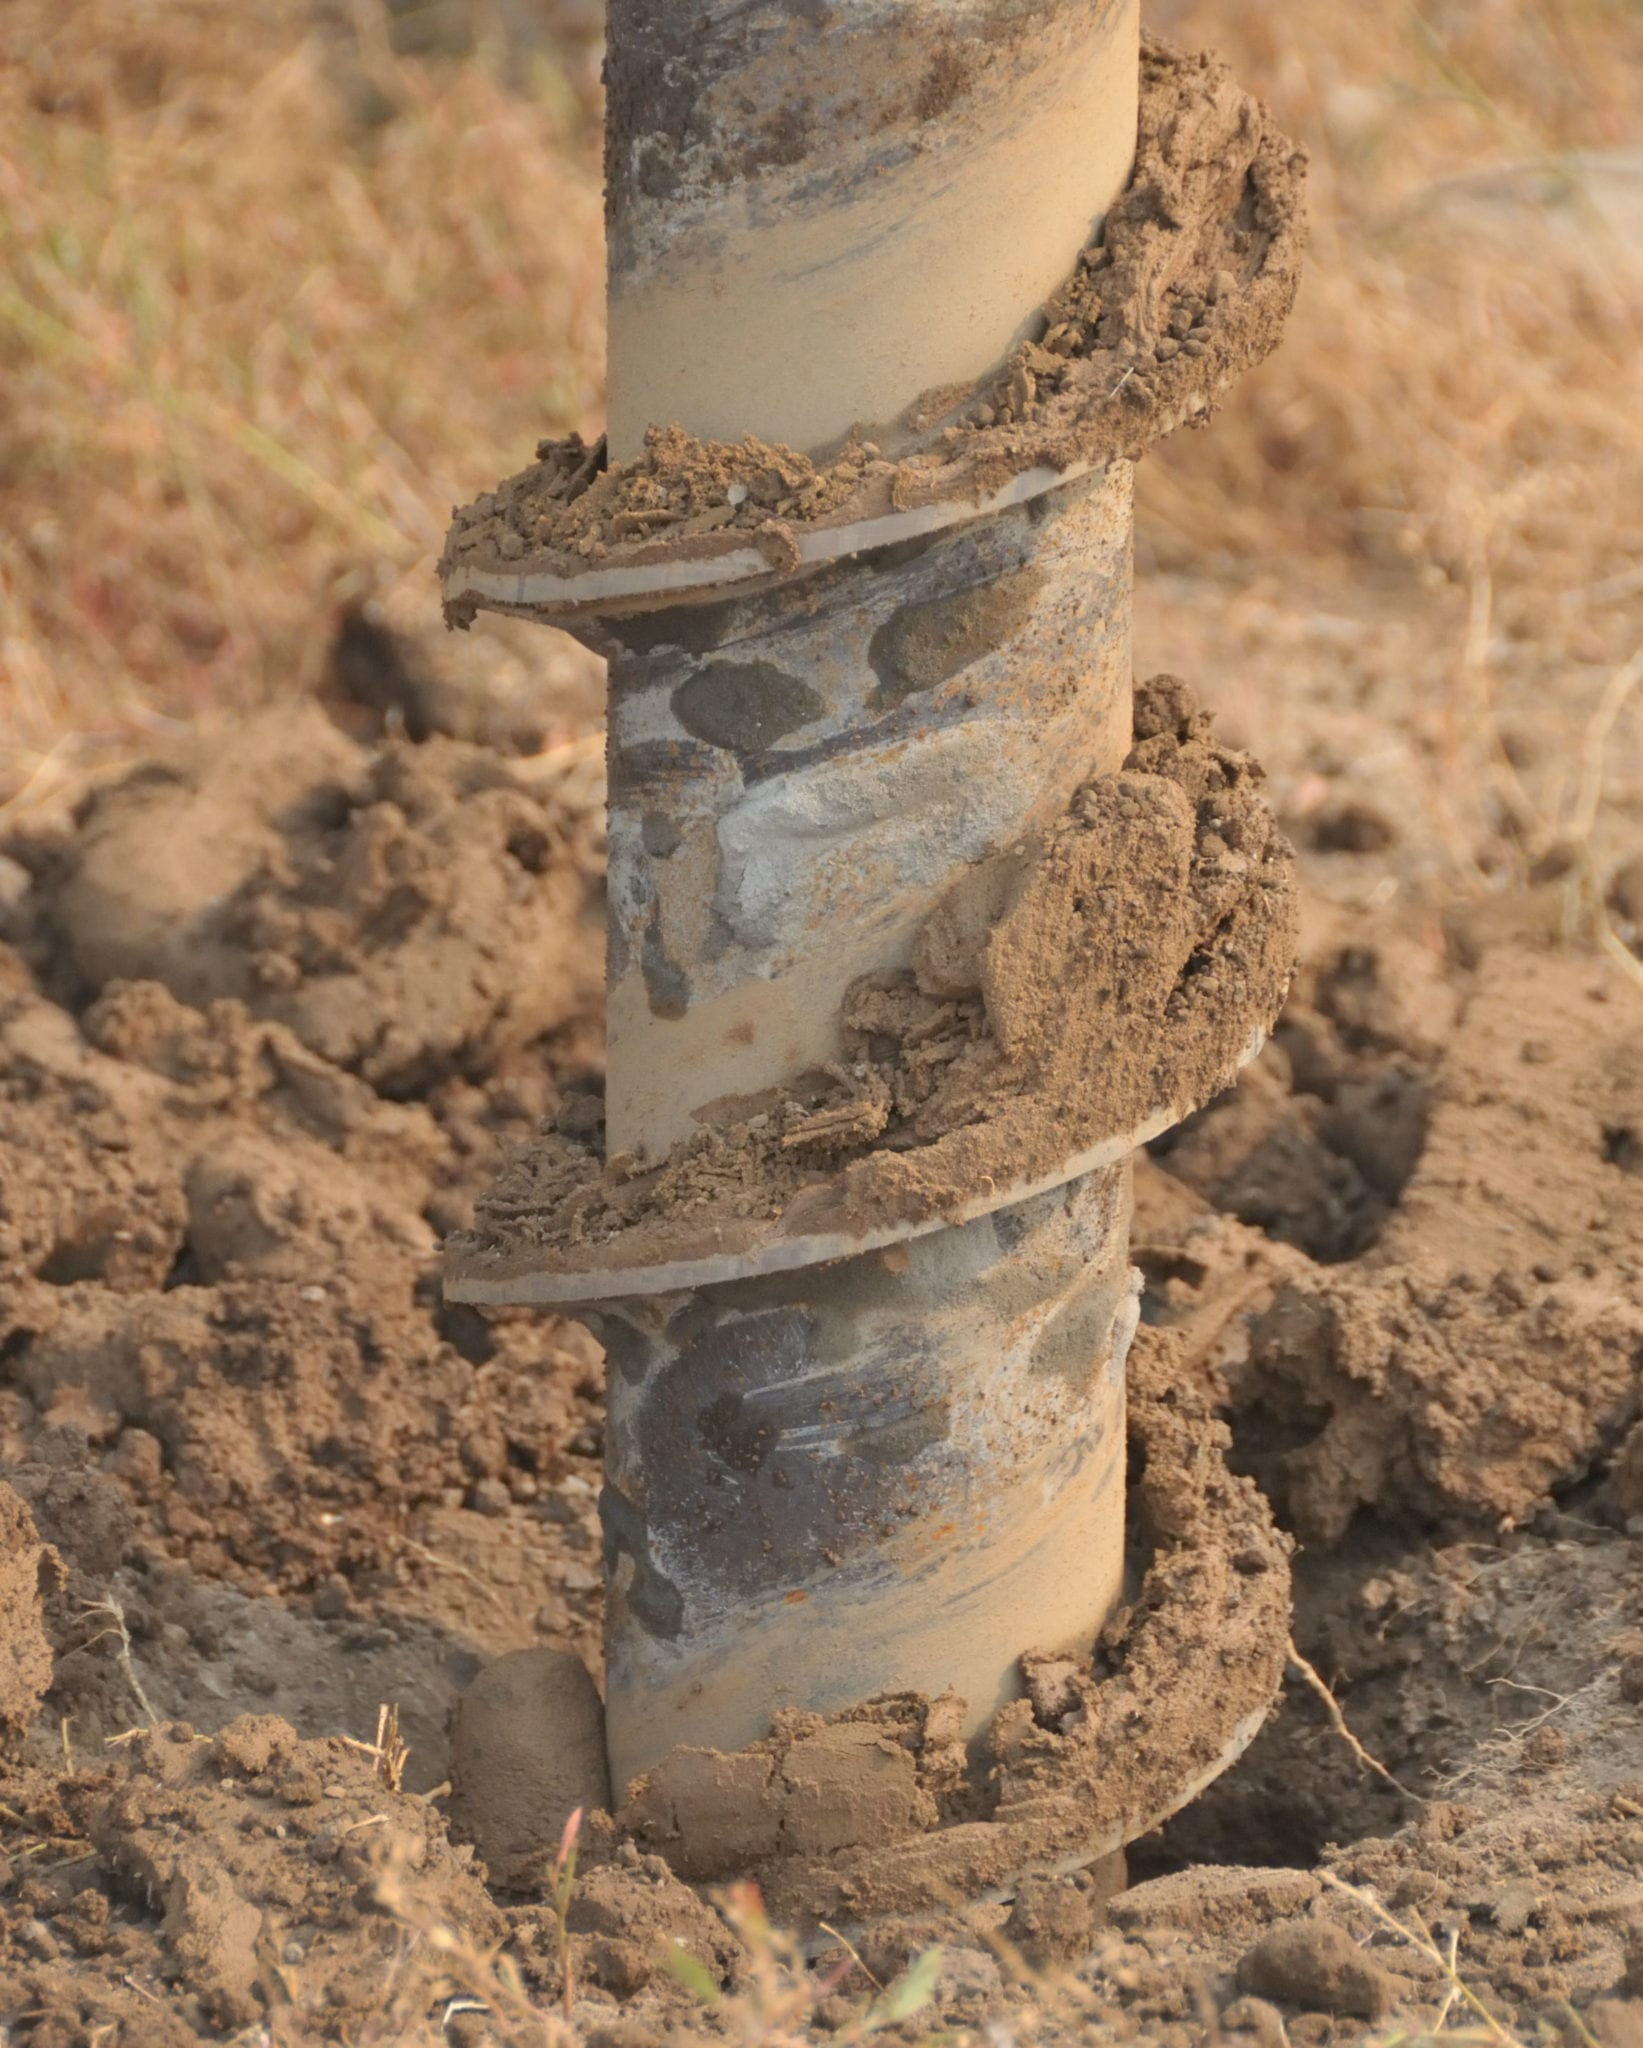 Environmental remediation includes drilling to install soil vapor extraction and groundwater pump and treat systems